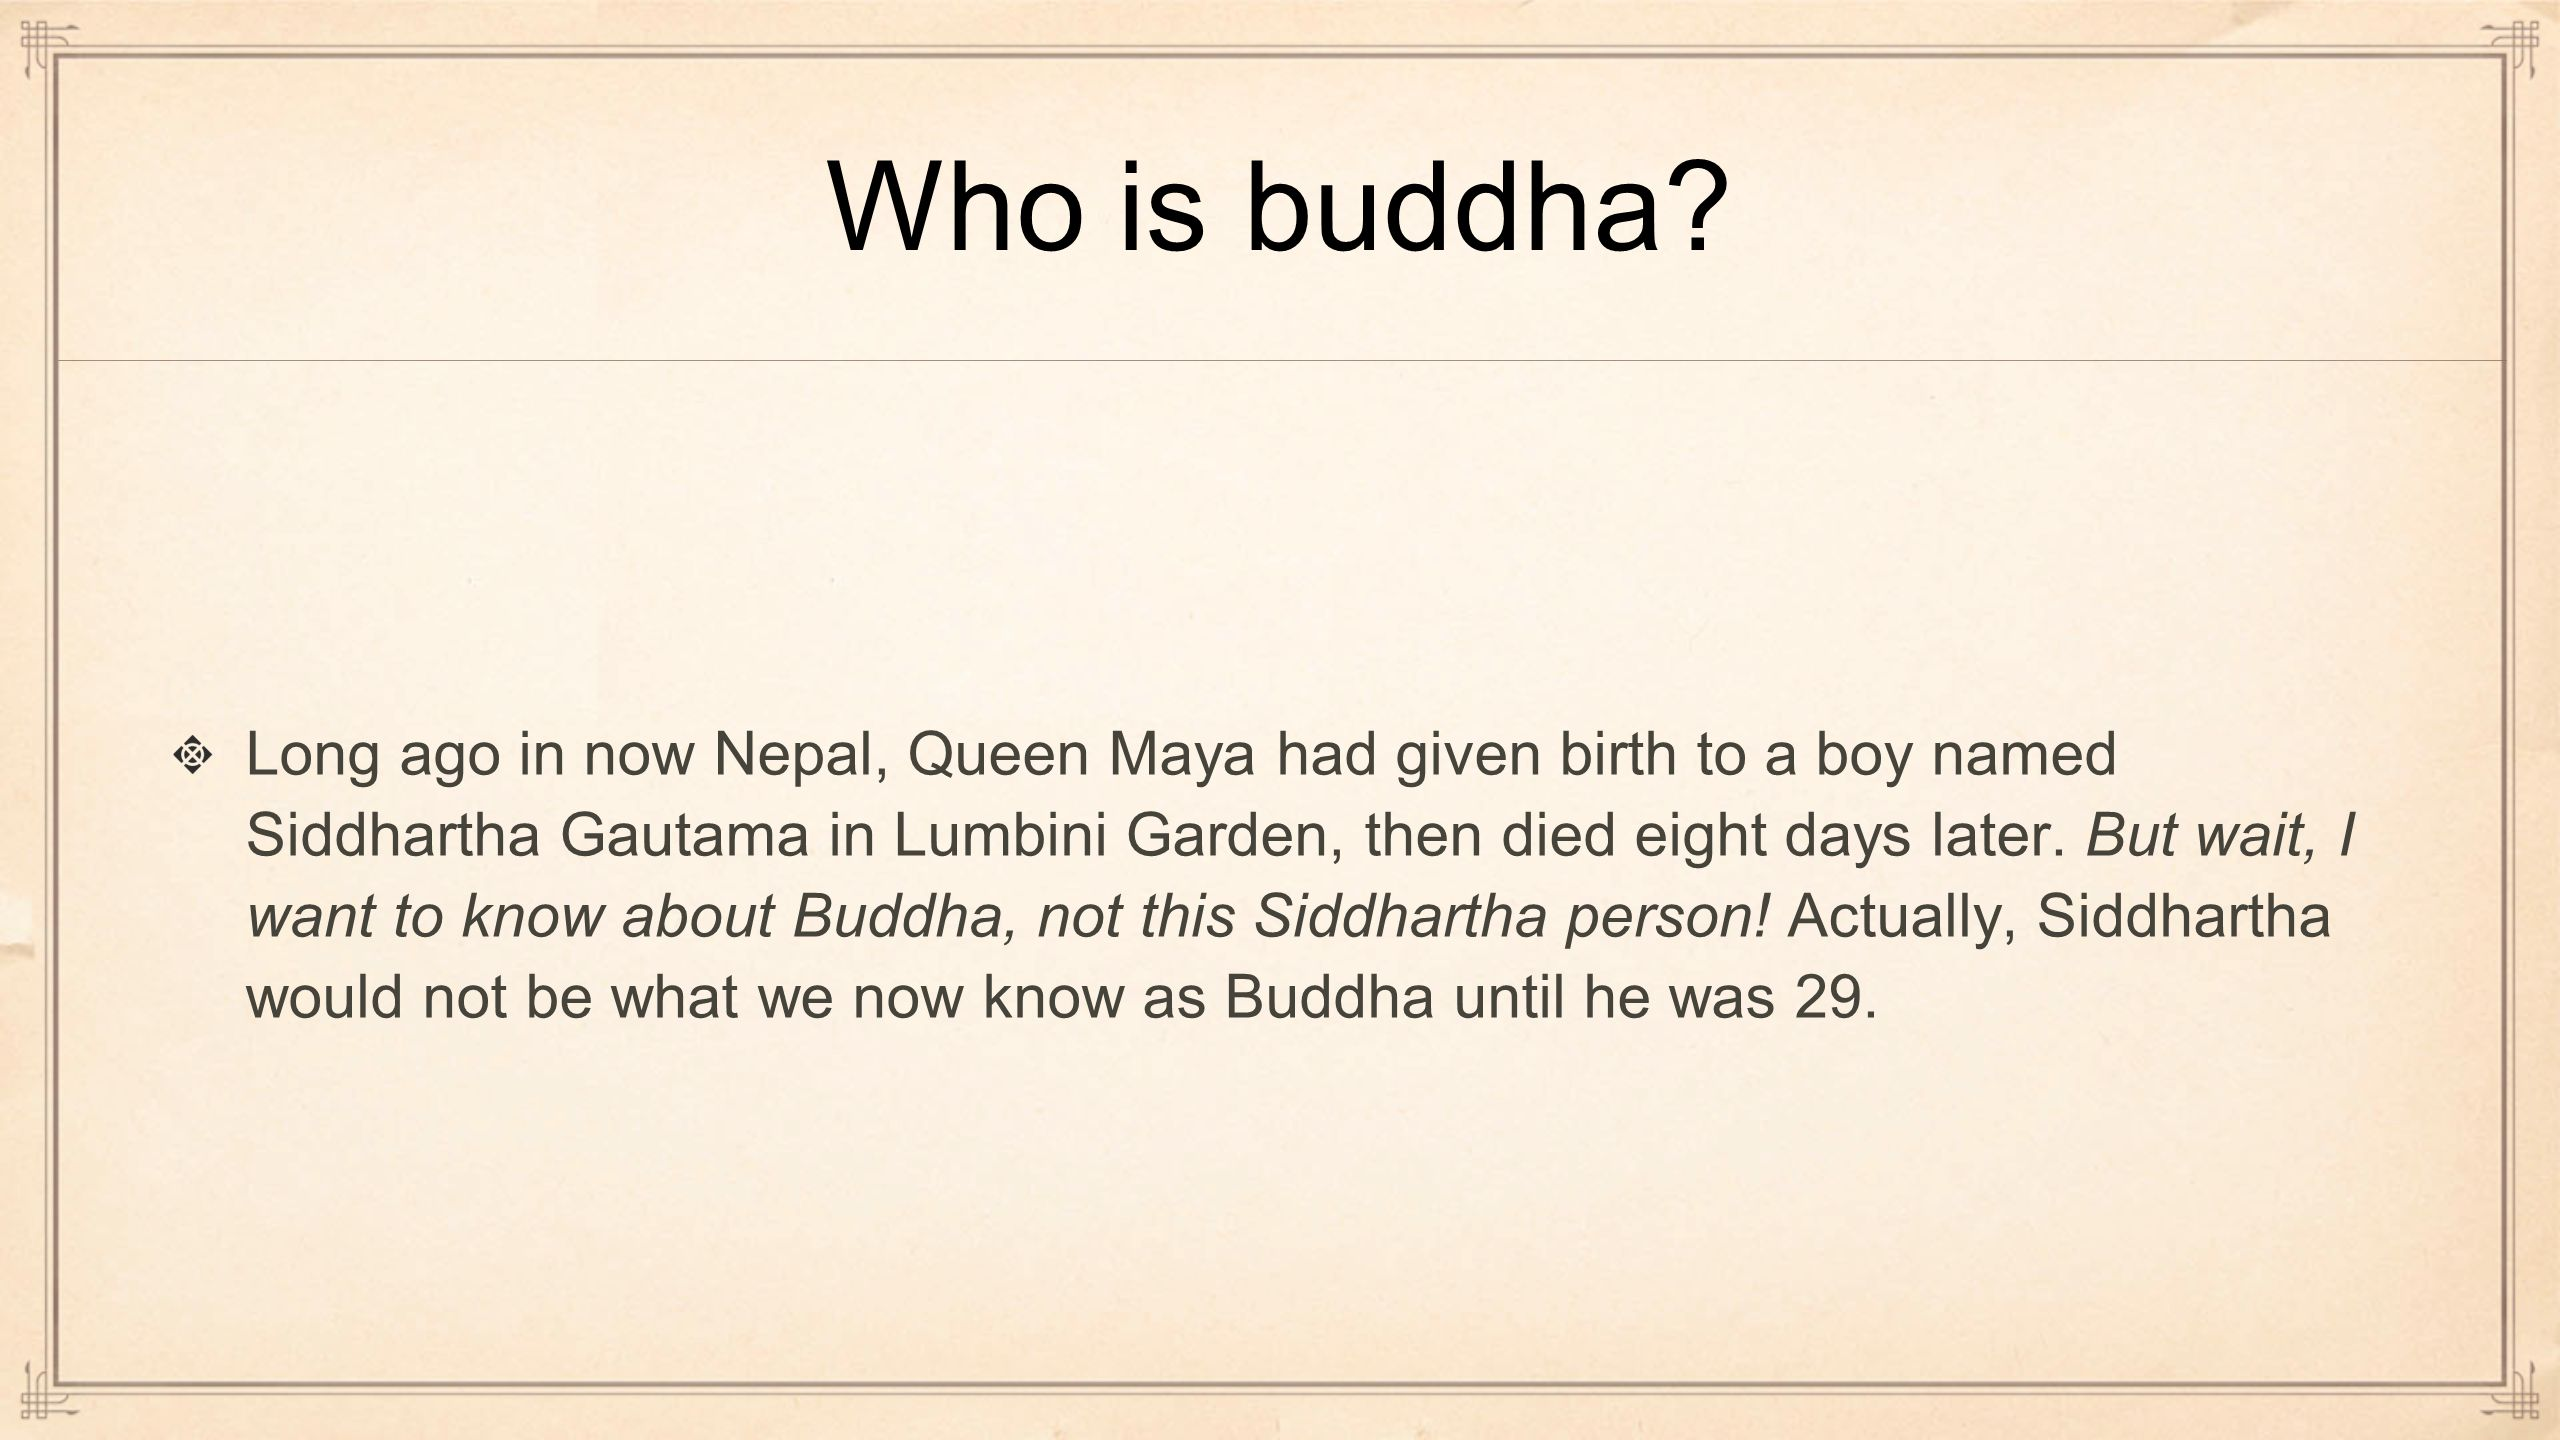 Who is buddha? Long ago in now Nepal, Queen Maya had given birth to a boy named Siddhartha Gautama in Lumbini Garden, then died eight days later. But